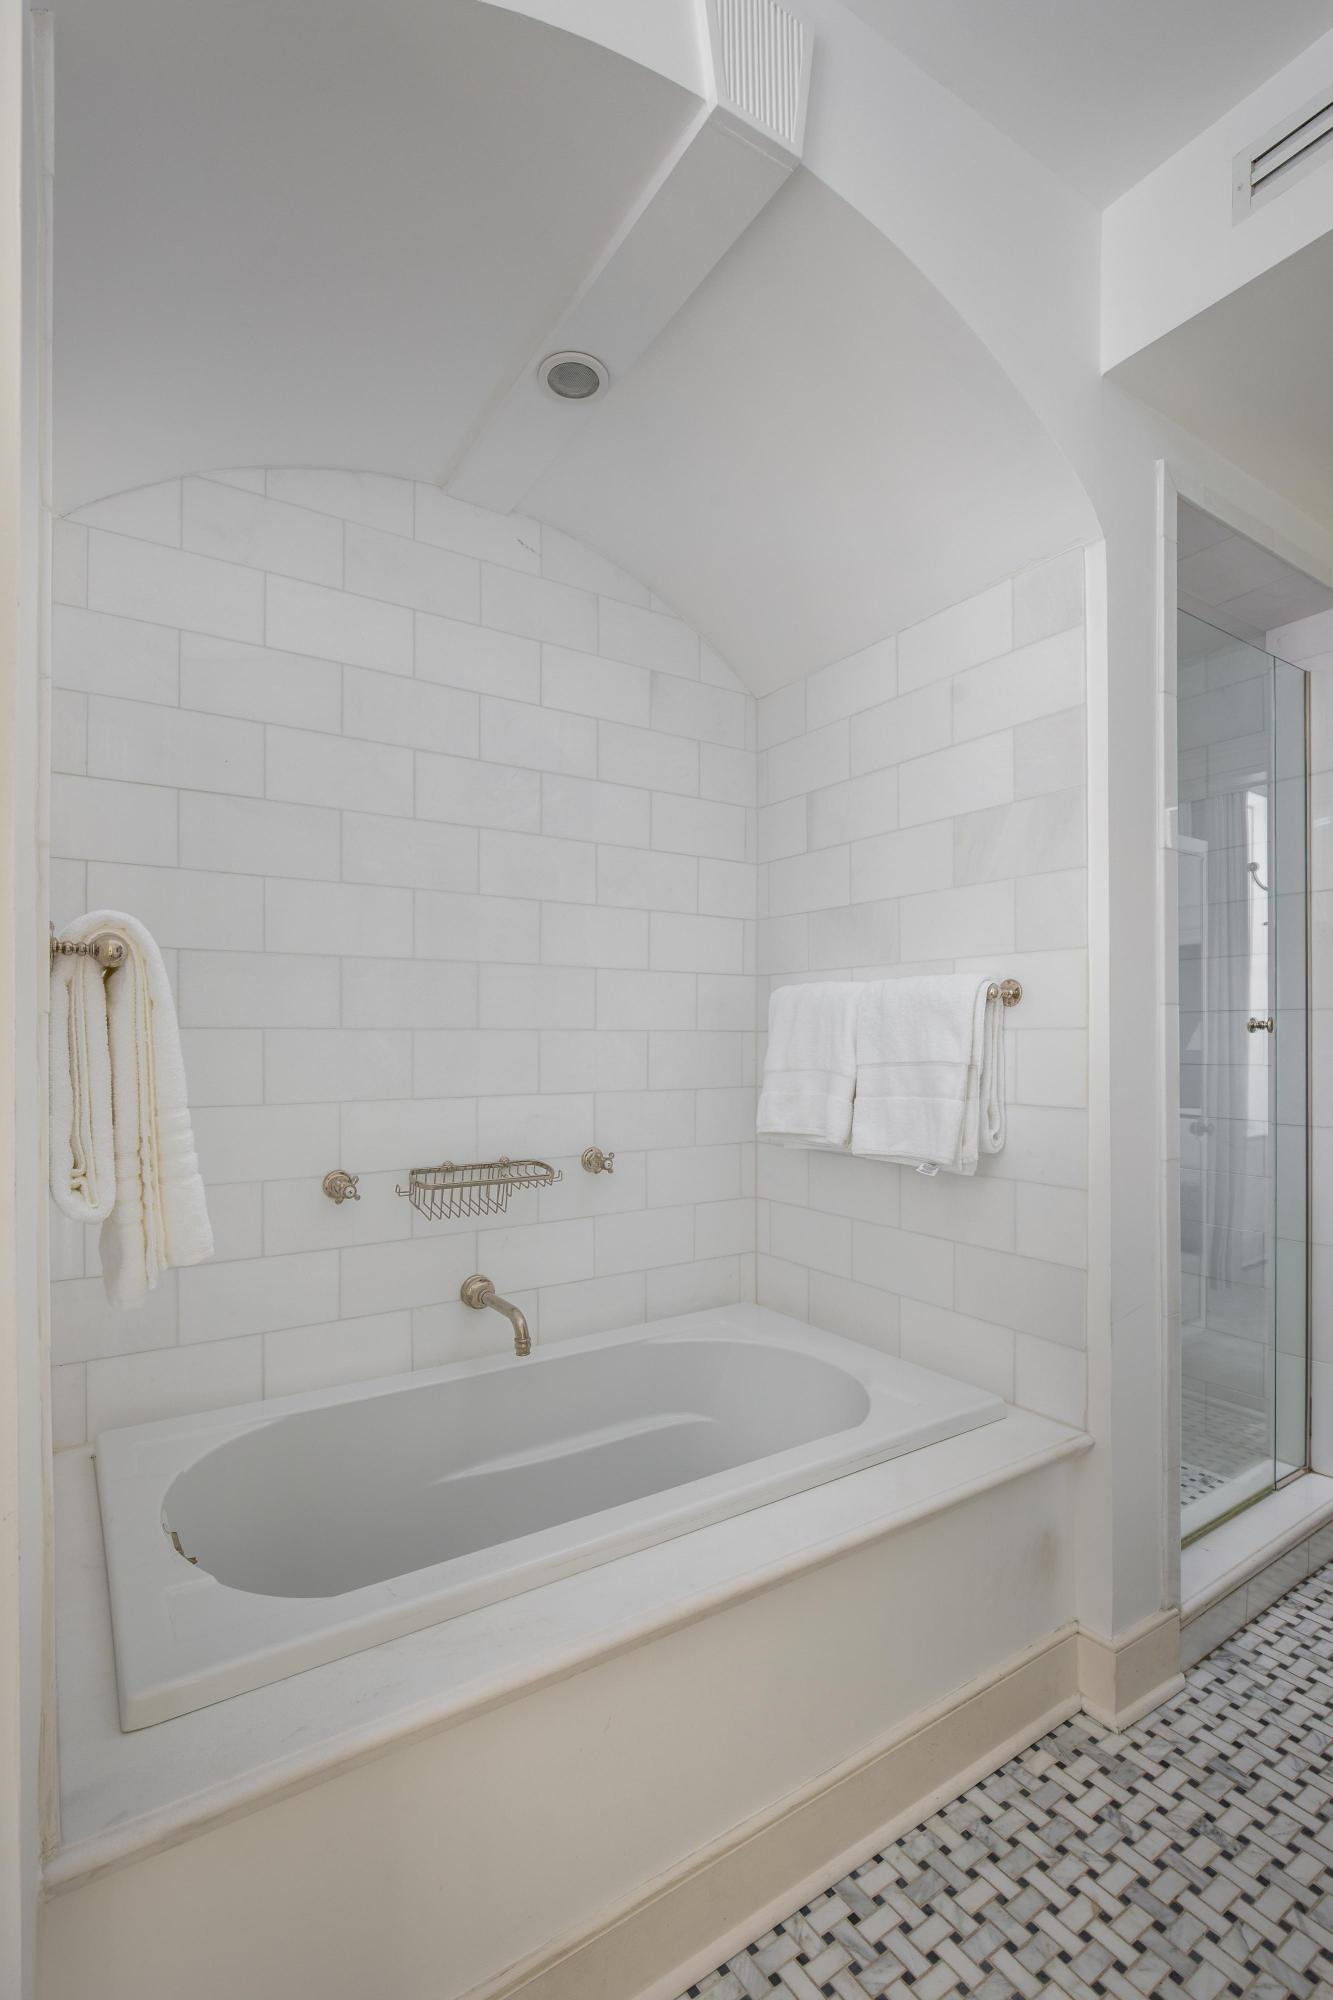 South of Broad Homes For Sale - 11 Church, Charleston, SC - 17